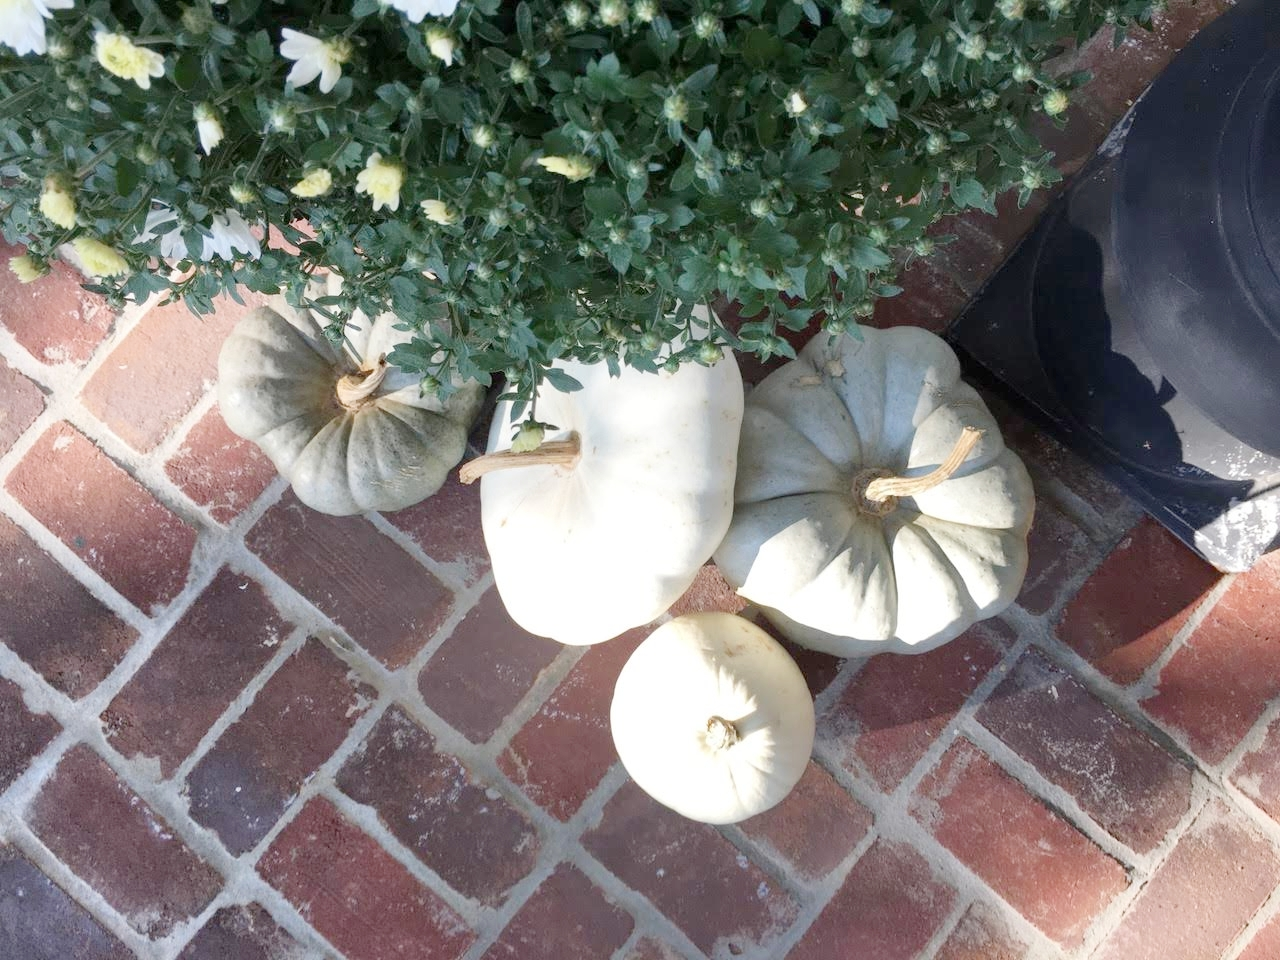 White and Gray pumpkins from above